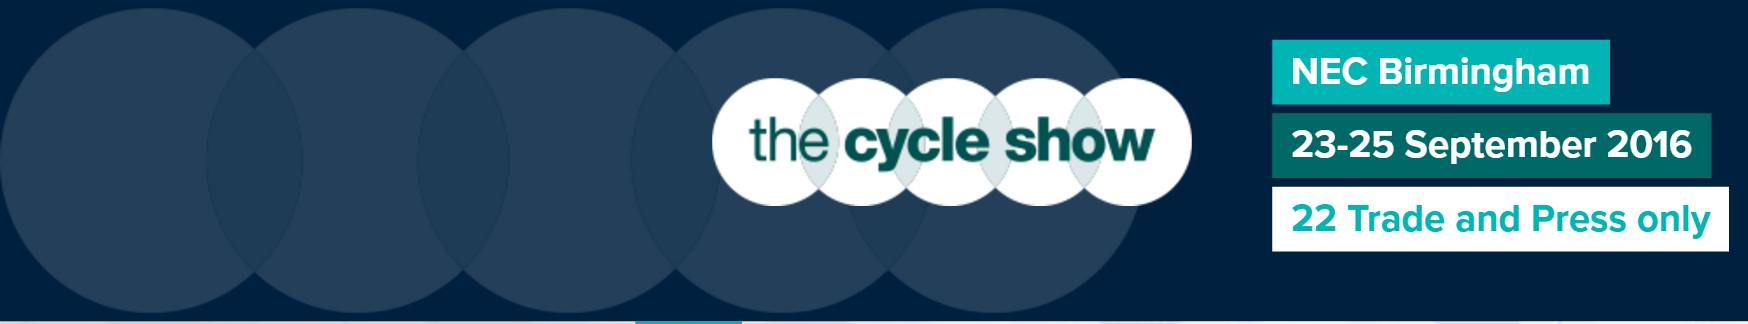 cycle show banner